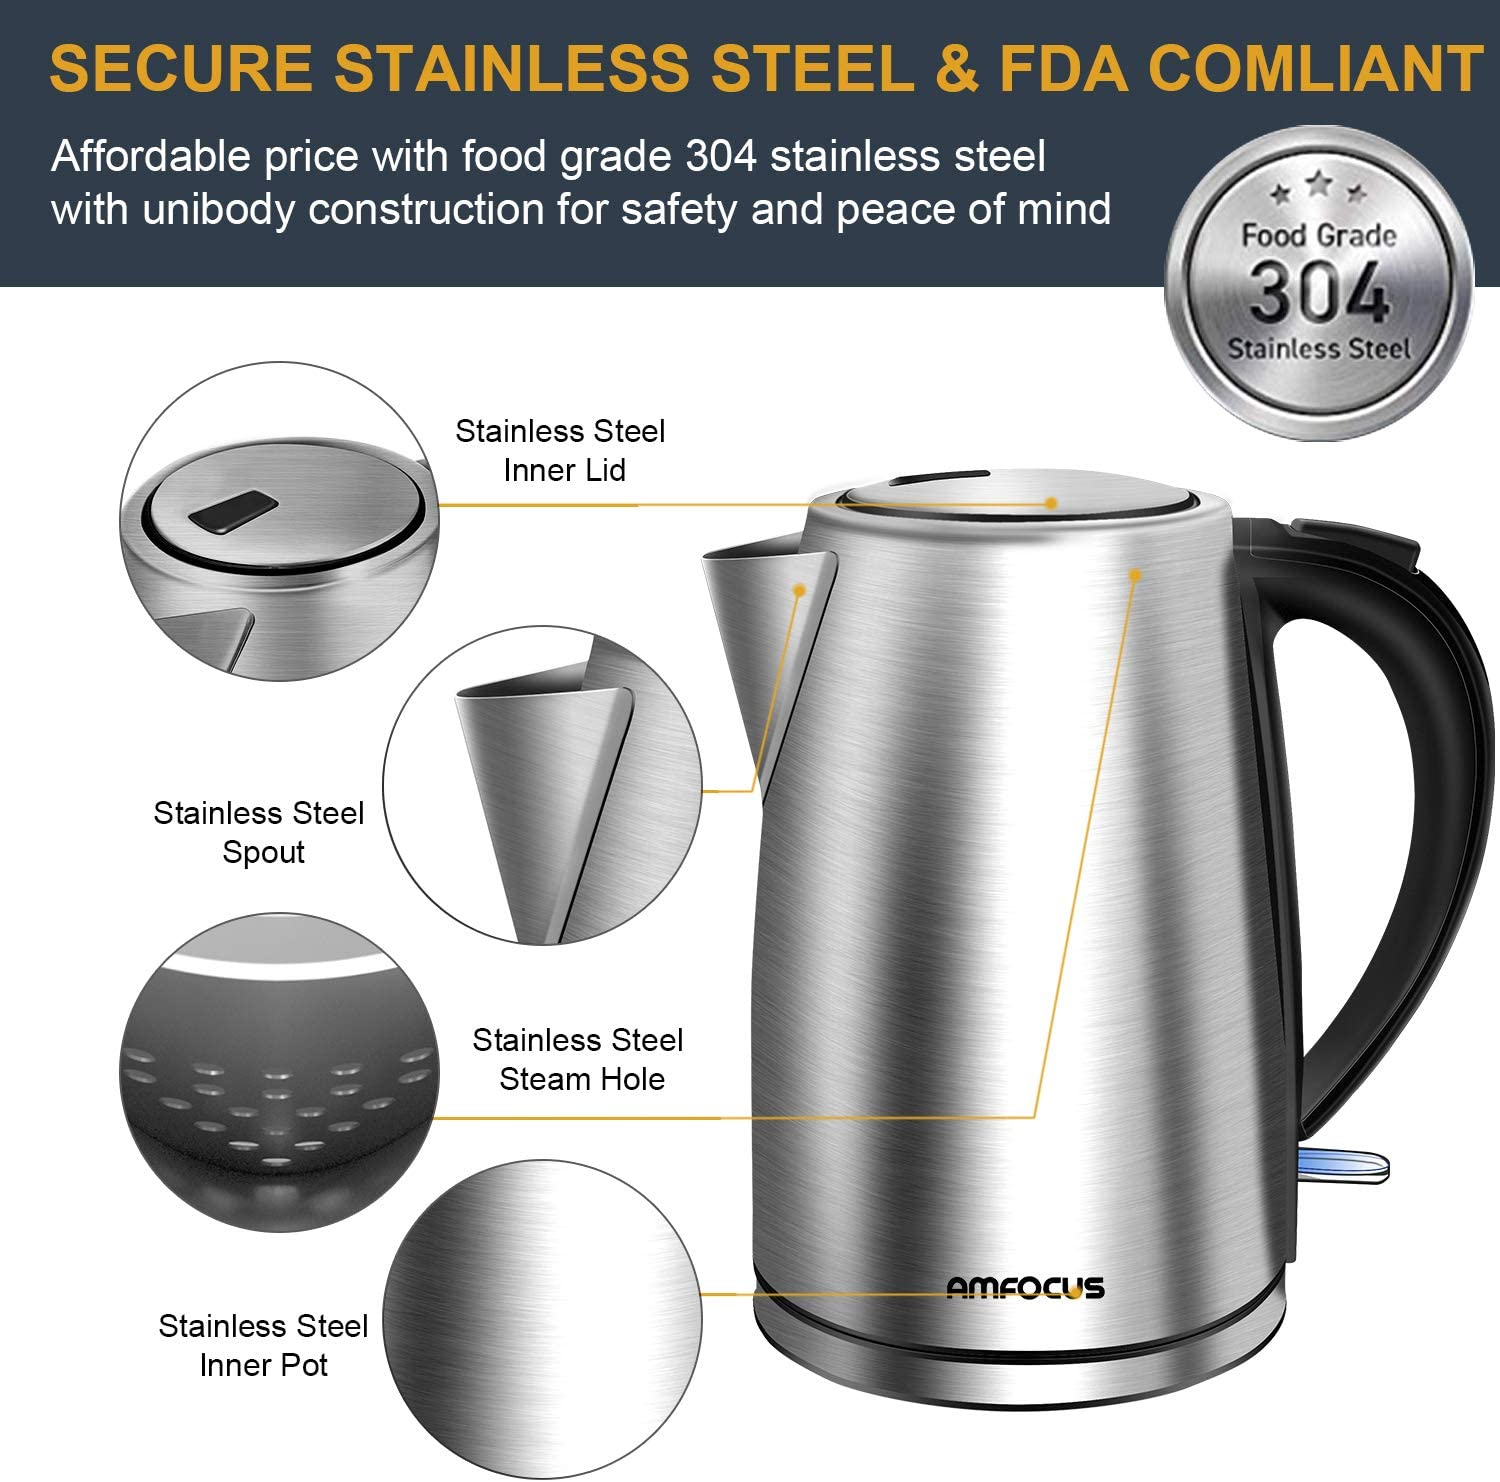 Electric Kettle, 1.7L BPA-Free Stainless Steel Water Kettle Tea Kettle with Cordless Auto Shut-Off Boil-Dry Protection, 1500W Fast Boiling, FCC FDA Approved